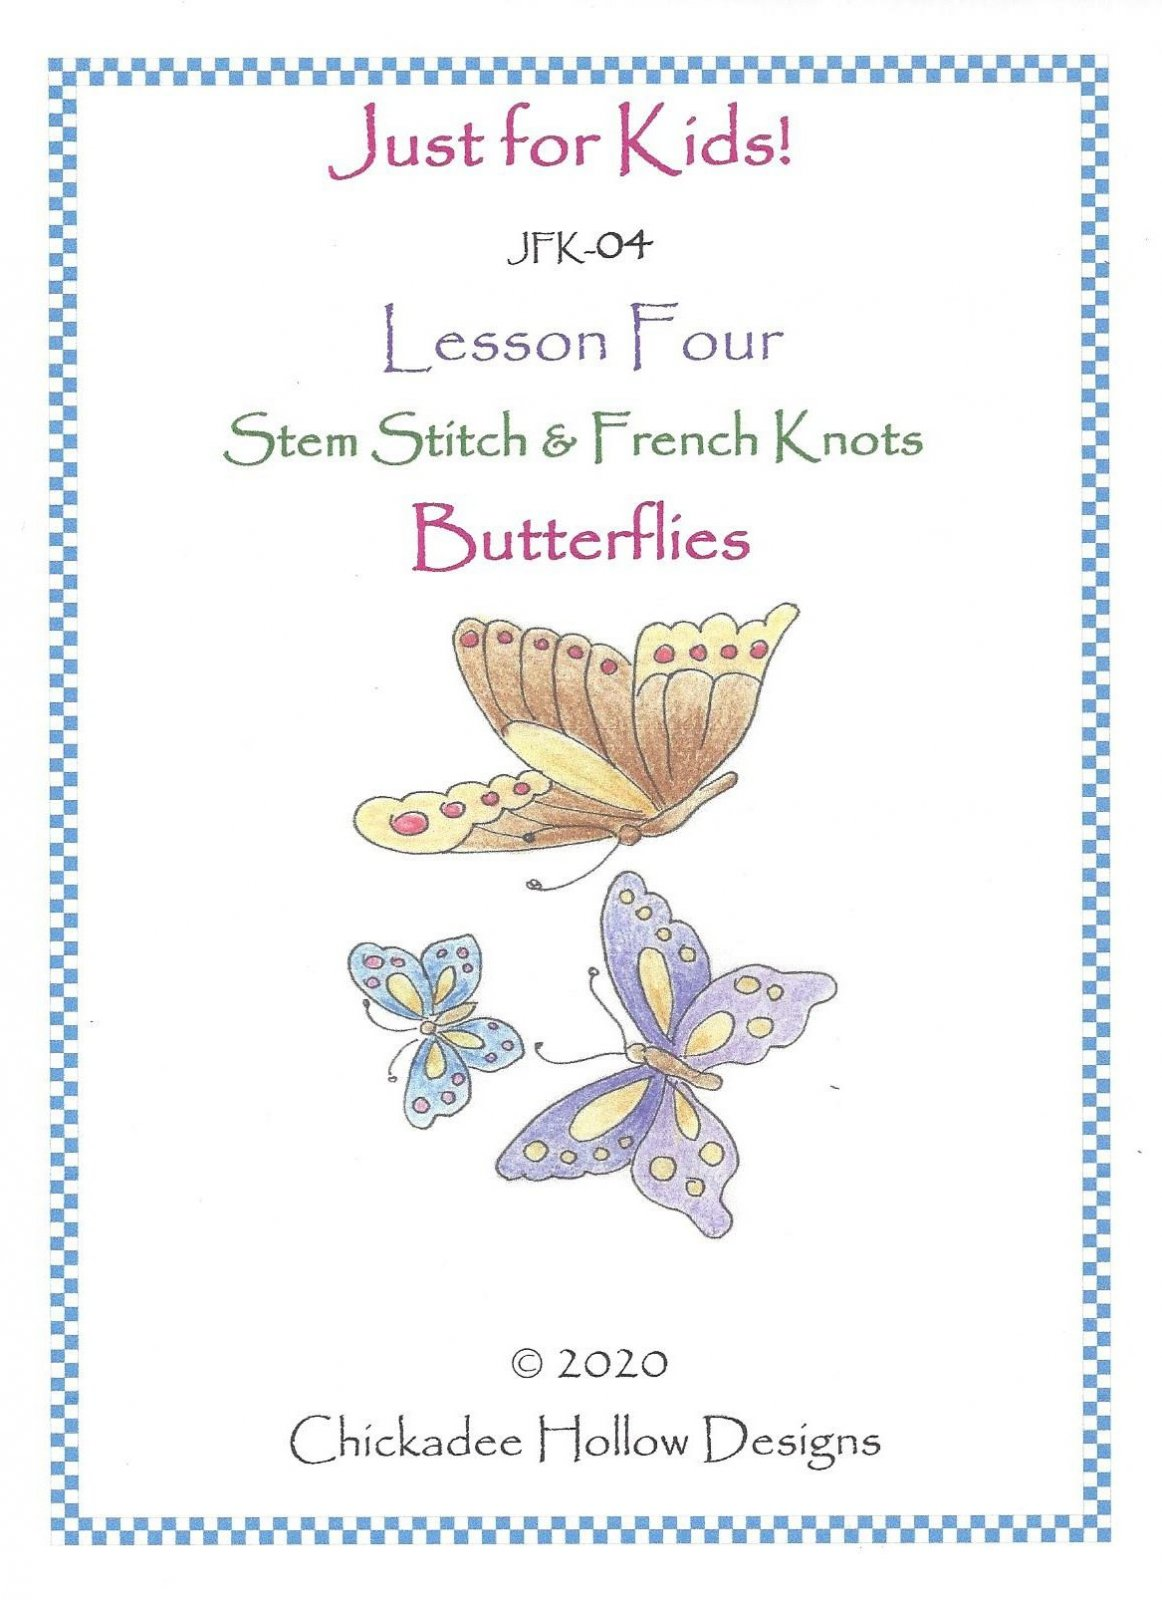 JFK04 Butterflies Lesson 4